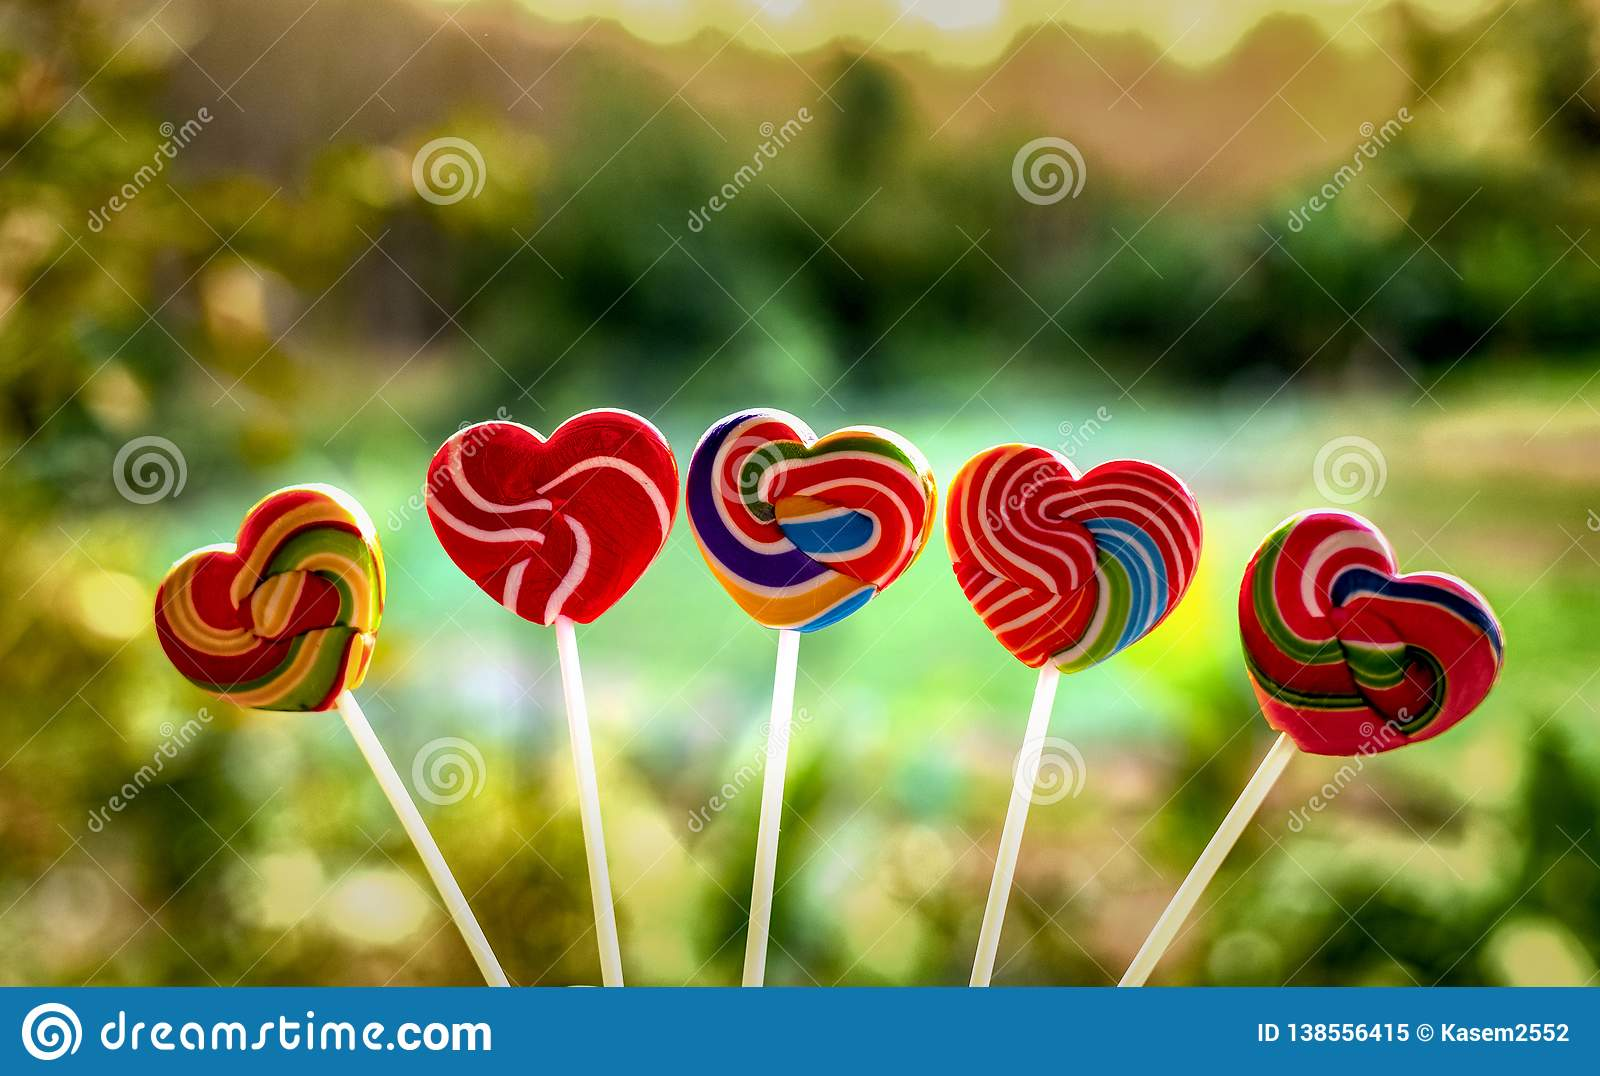 Sweets candies heart shape color full on blurred background, Set candy of color rainbow lollipops, Gift for Valentine day